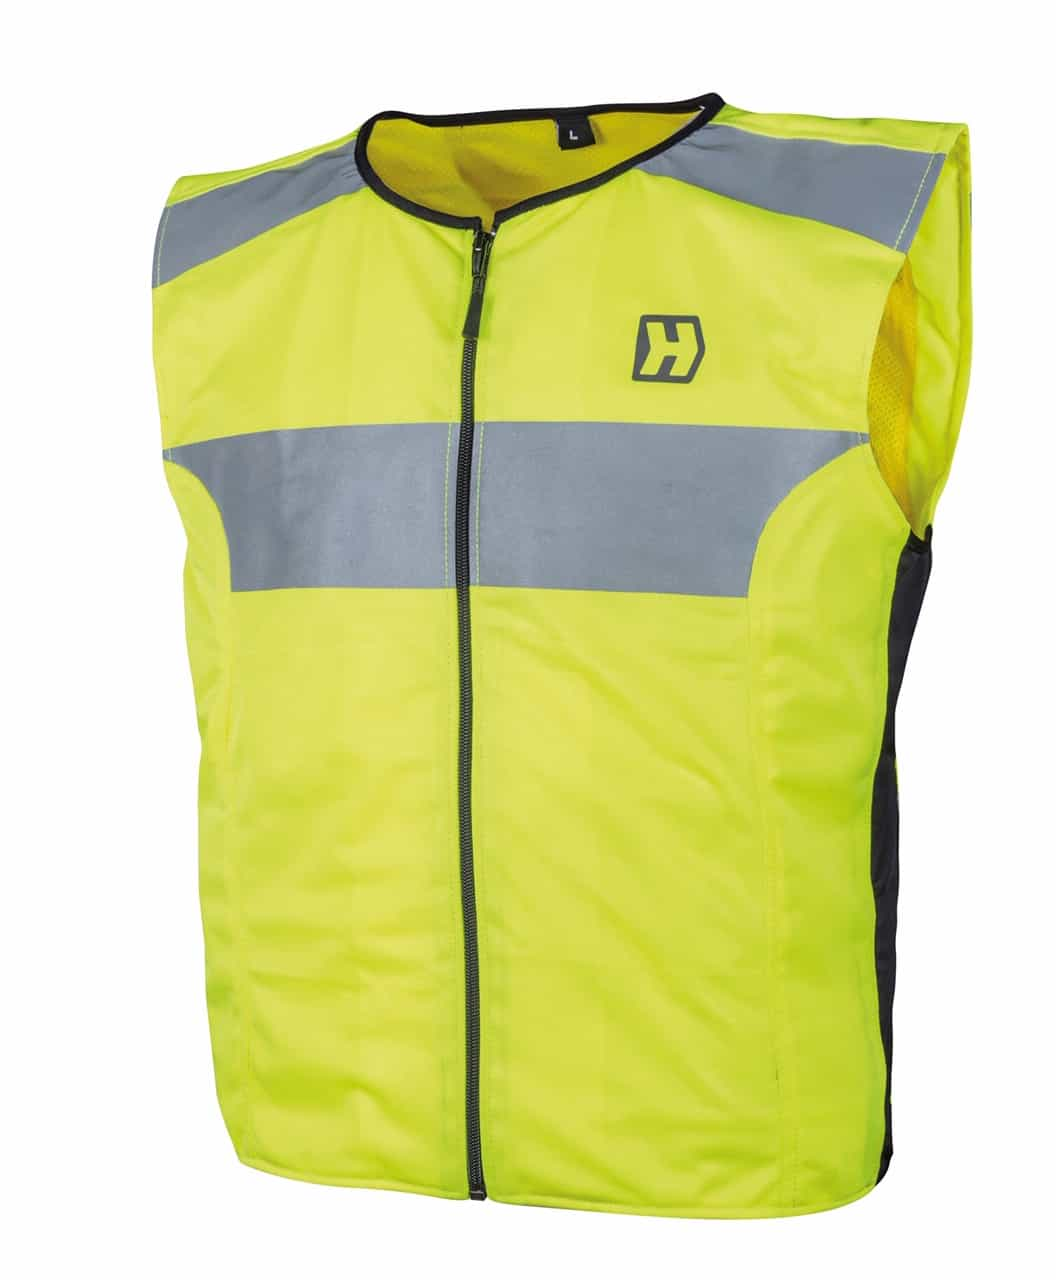 Hevik Safety Vest Light